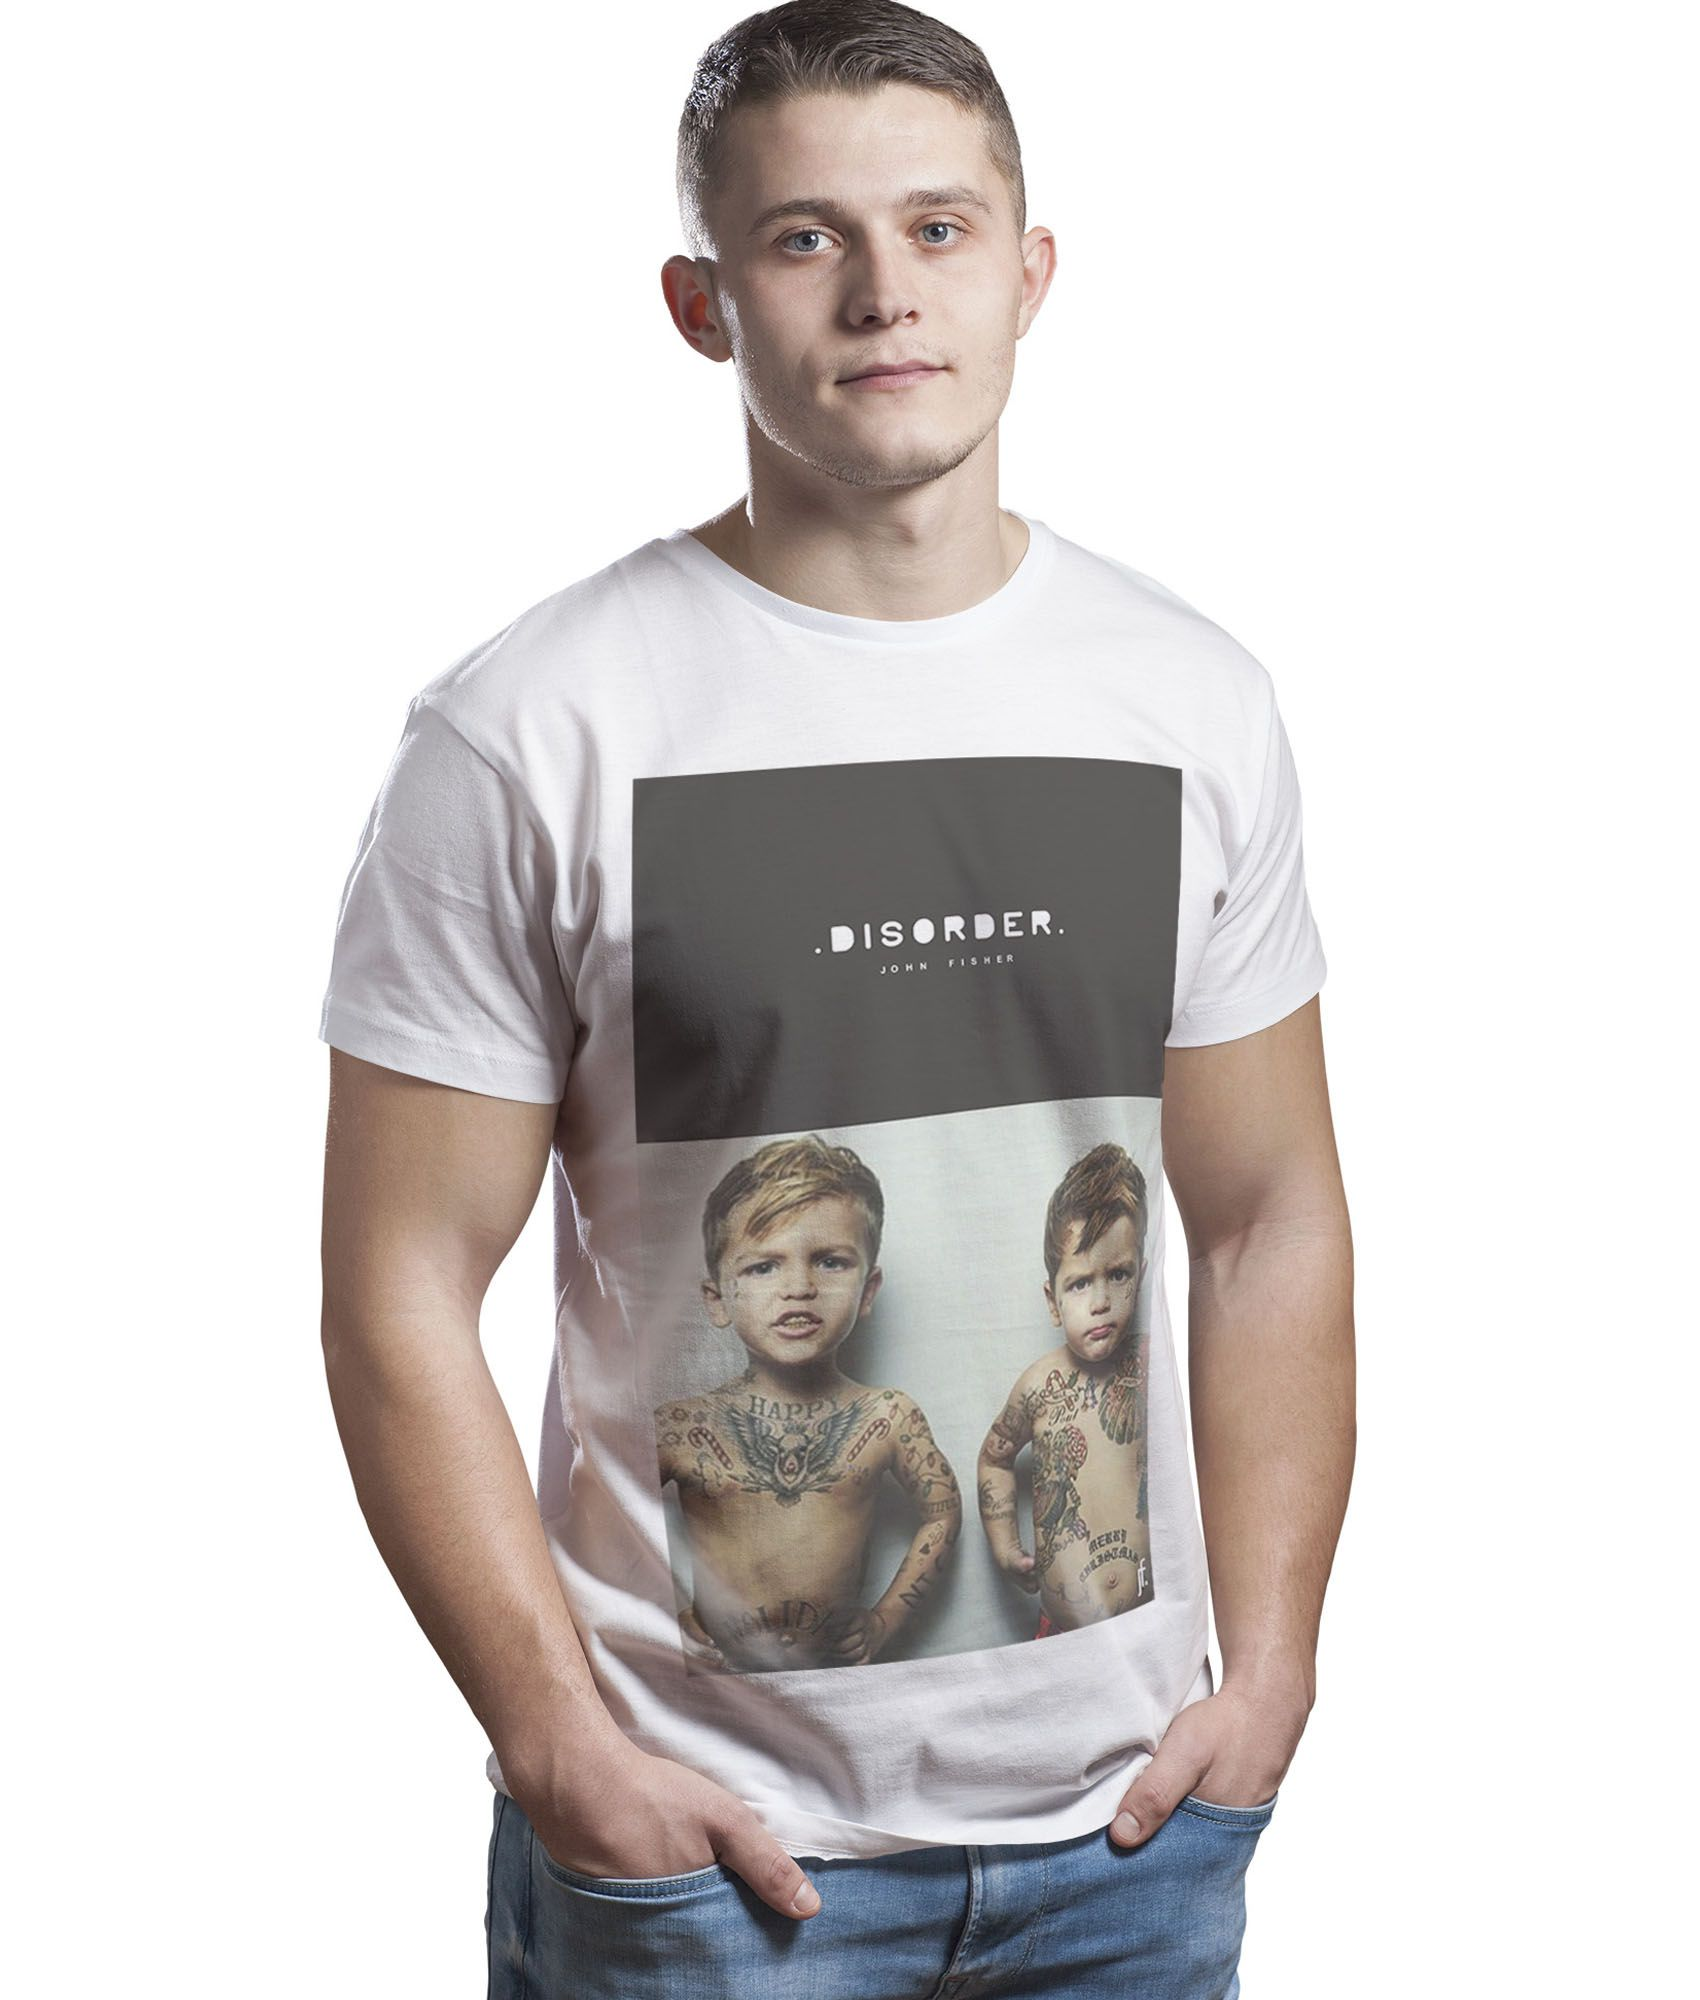 T-Shirt Children Desorder